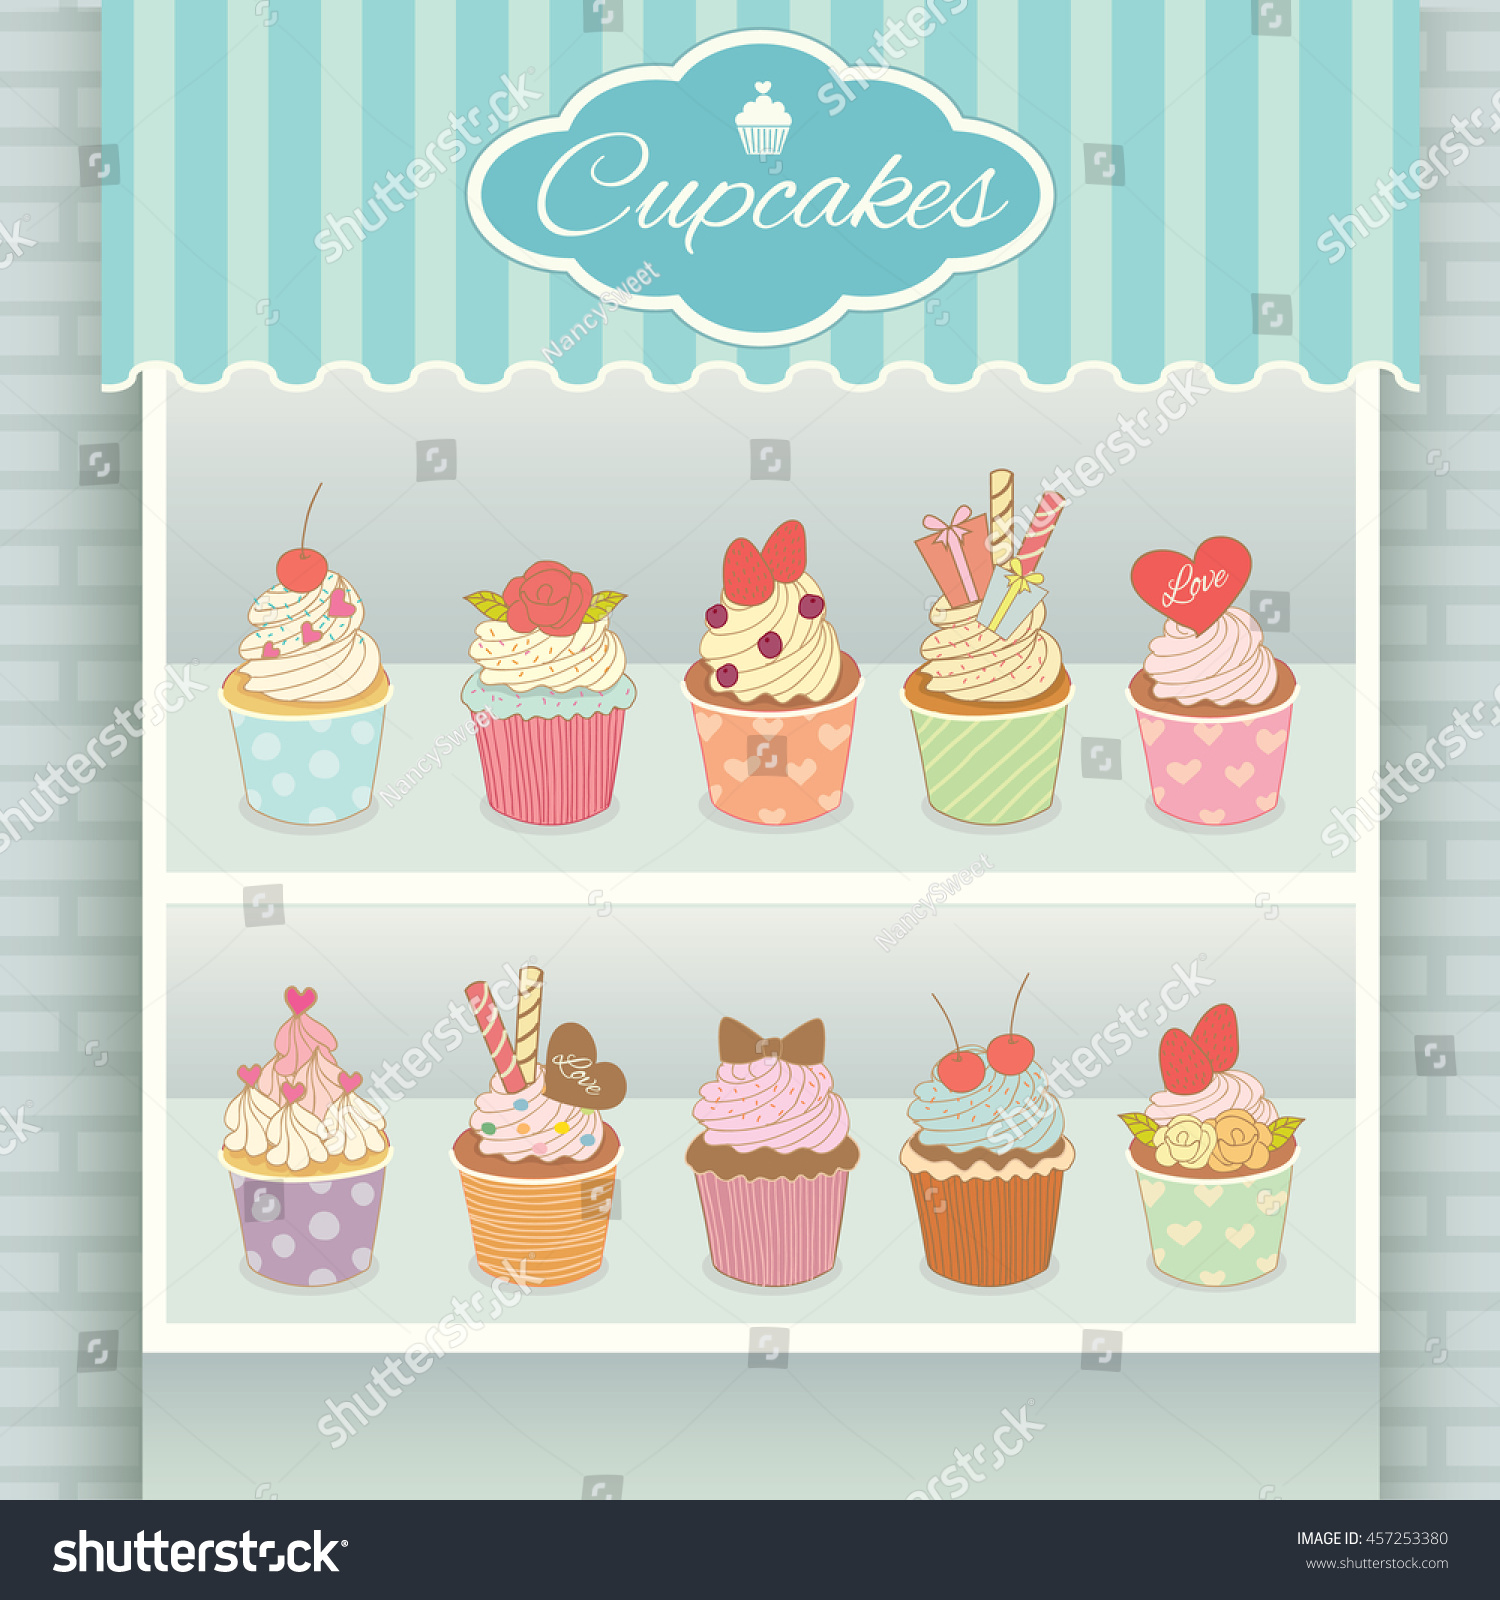 illustration vector various cupcakes menu display stock vector